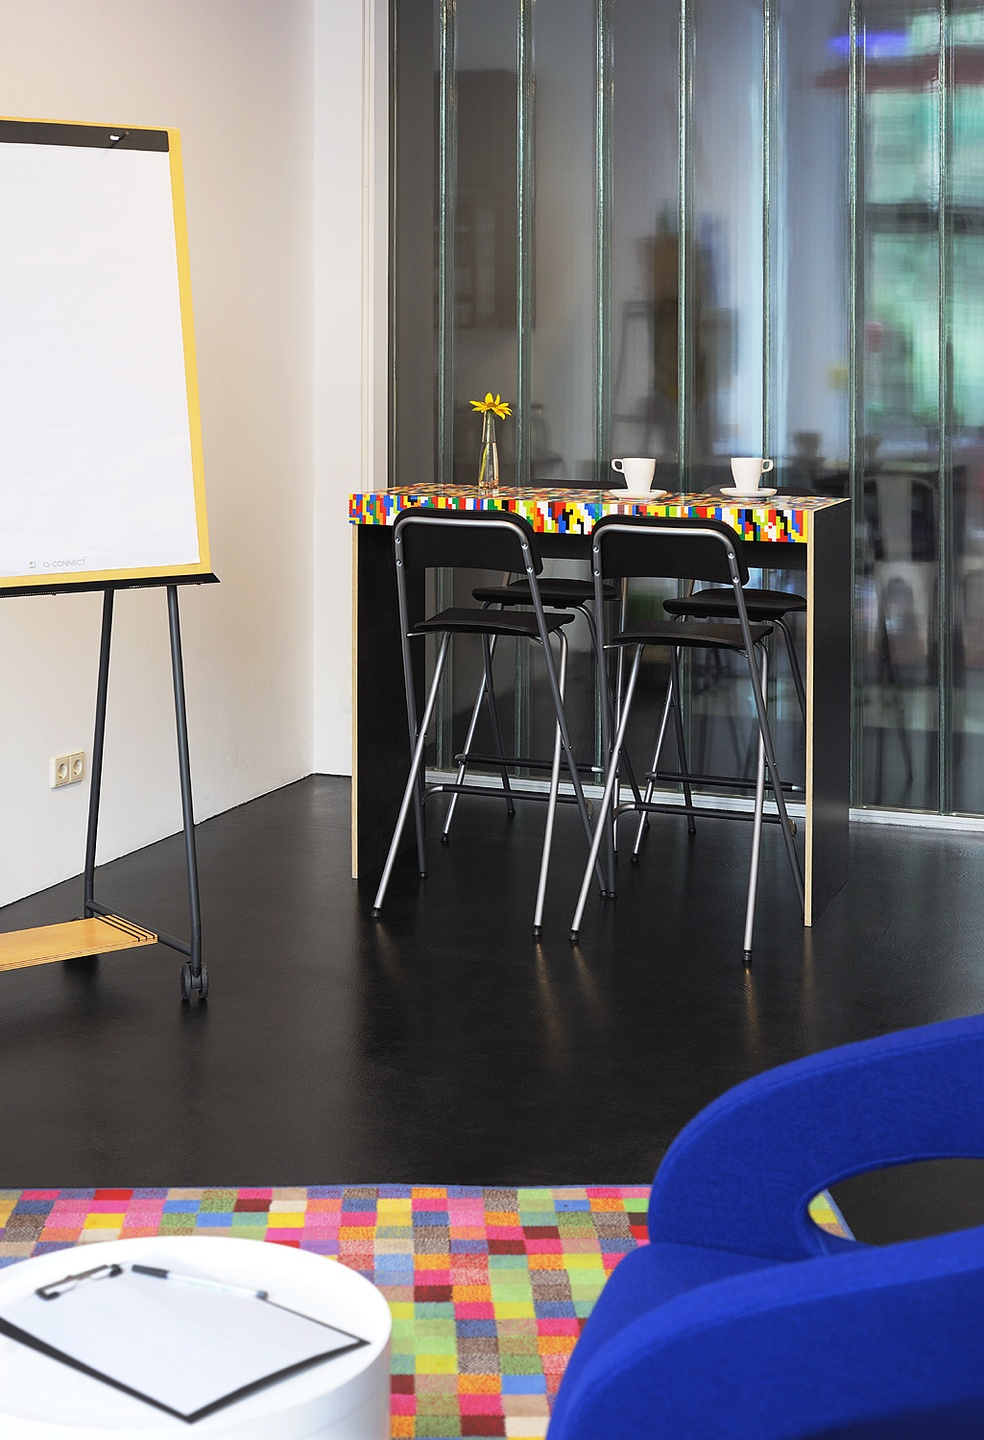 Berlin conference rooms Coworking space Meeet AG Mitte - Room Play image 1